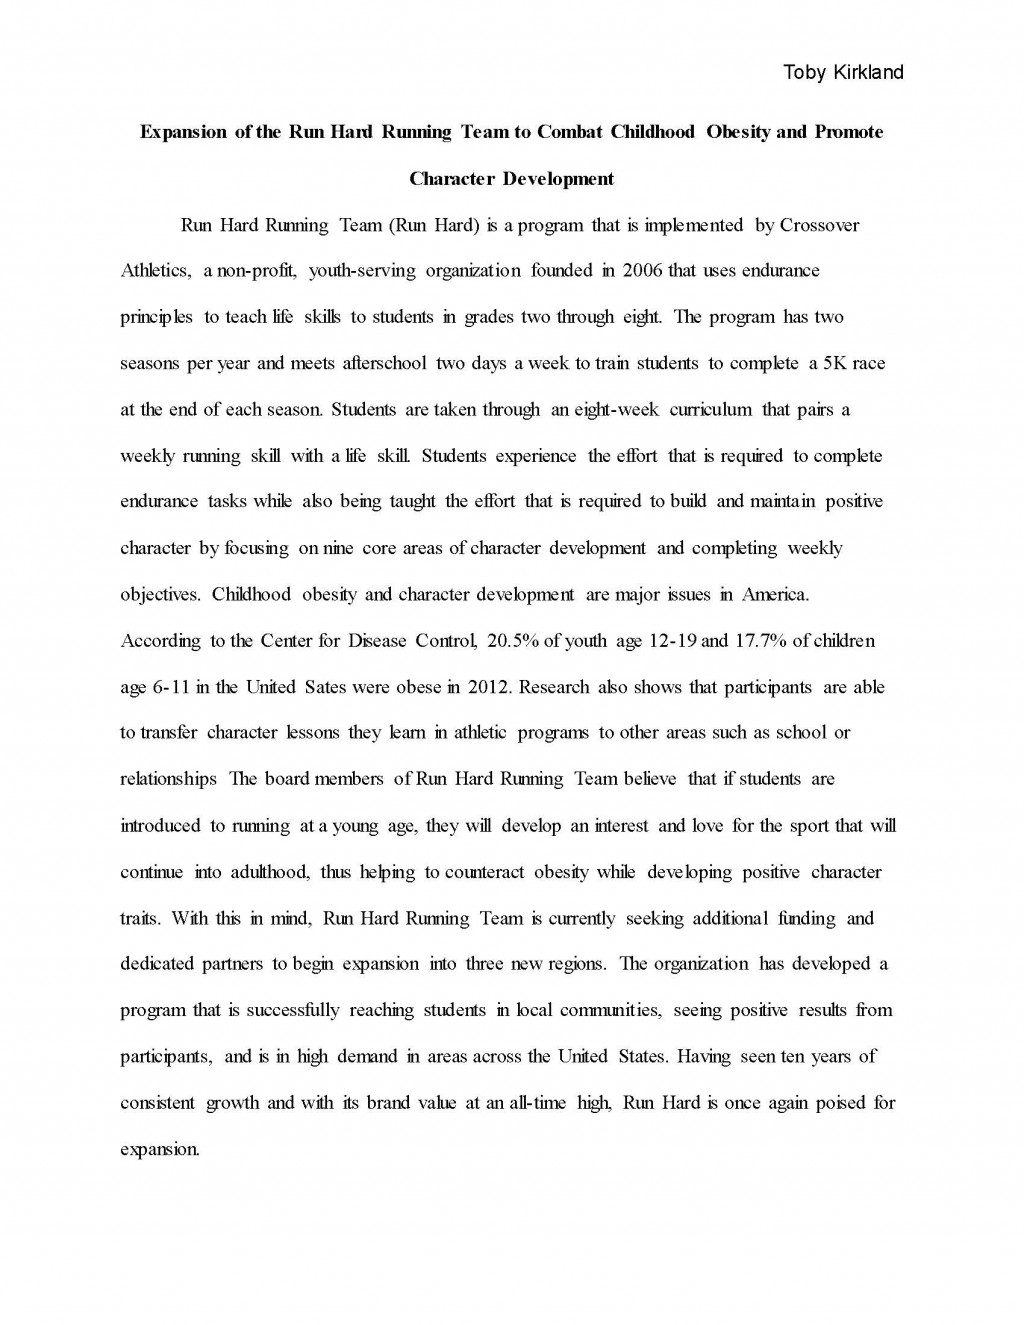 002 Research Paper Papers On Childhood Obesity Toby Kirkland Final Grant Proposal Page 01 Fantastic Studies Argumentative In India Large